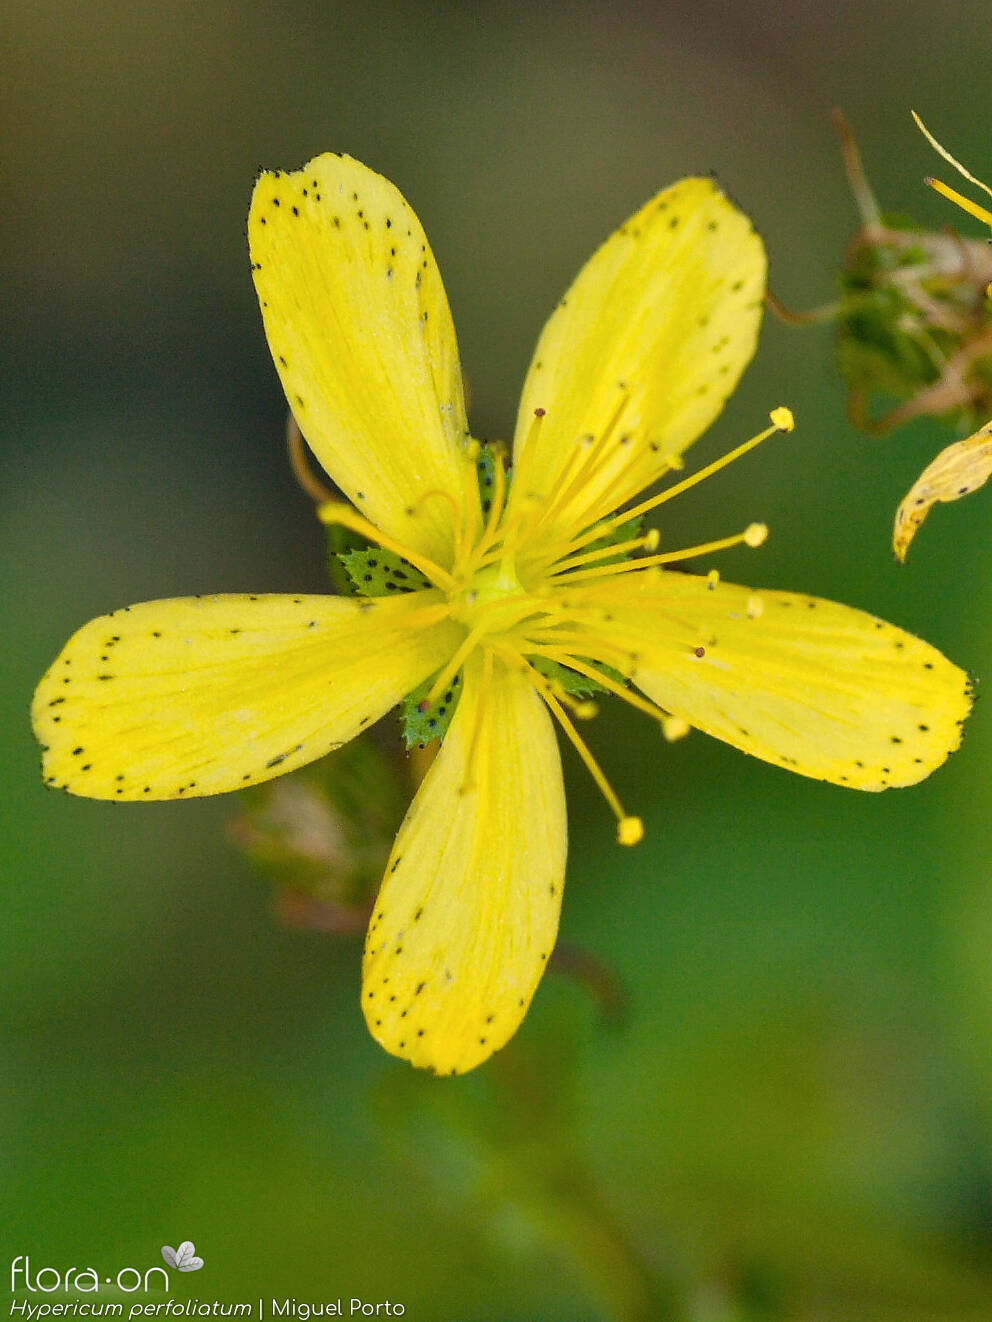 Hypericum perfoliatum - Flor (close-up) | Miguel Porto; CC BY-NC 4.0